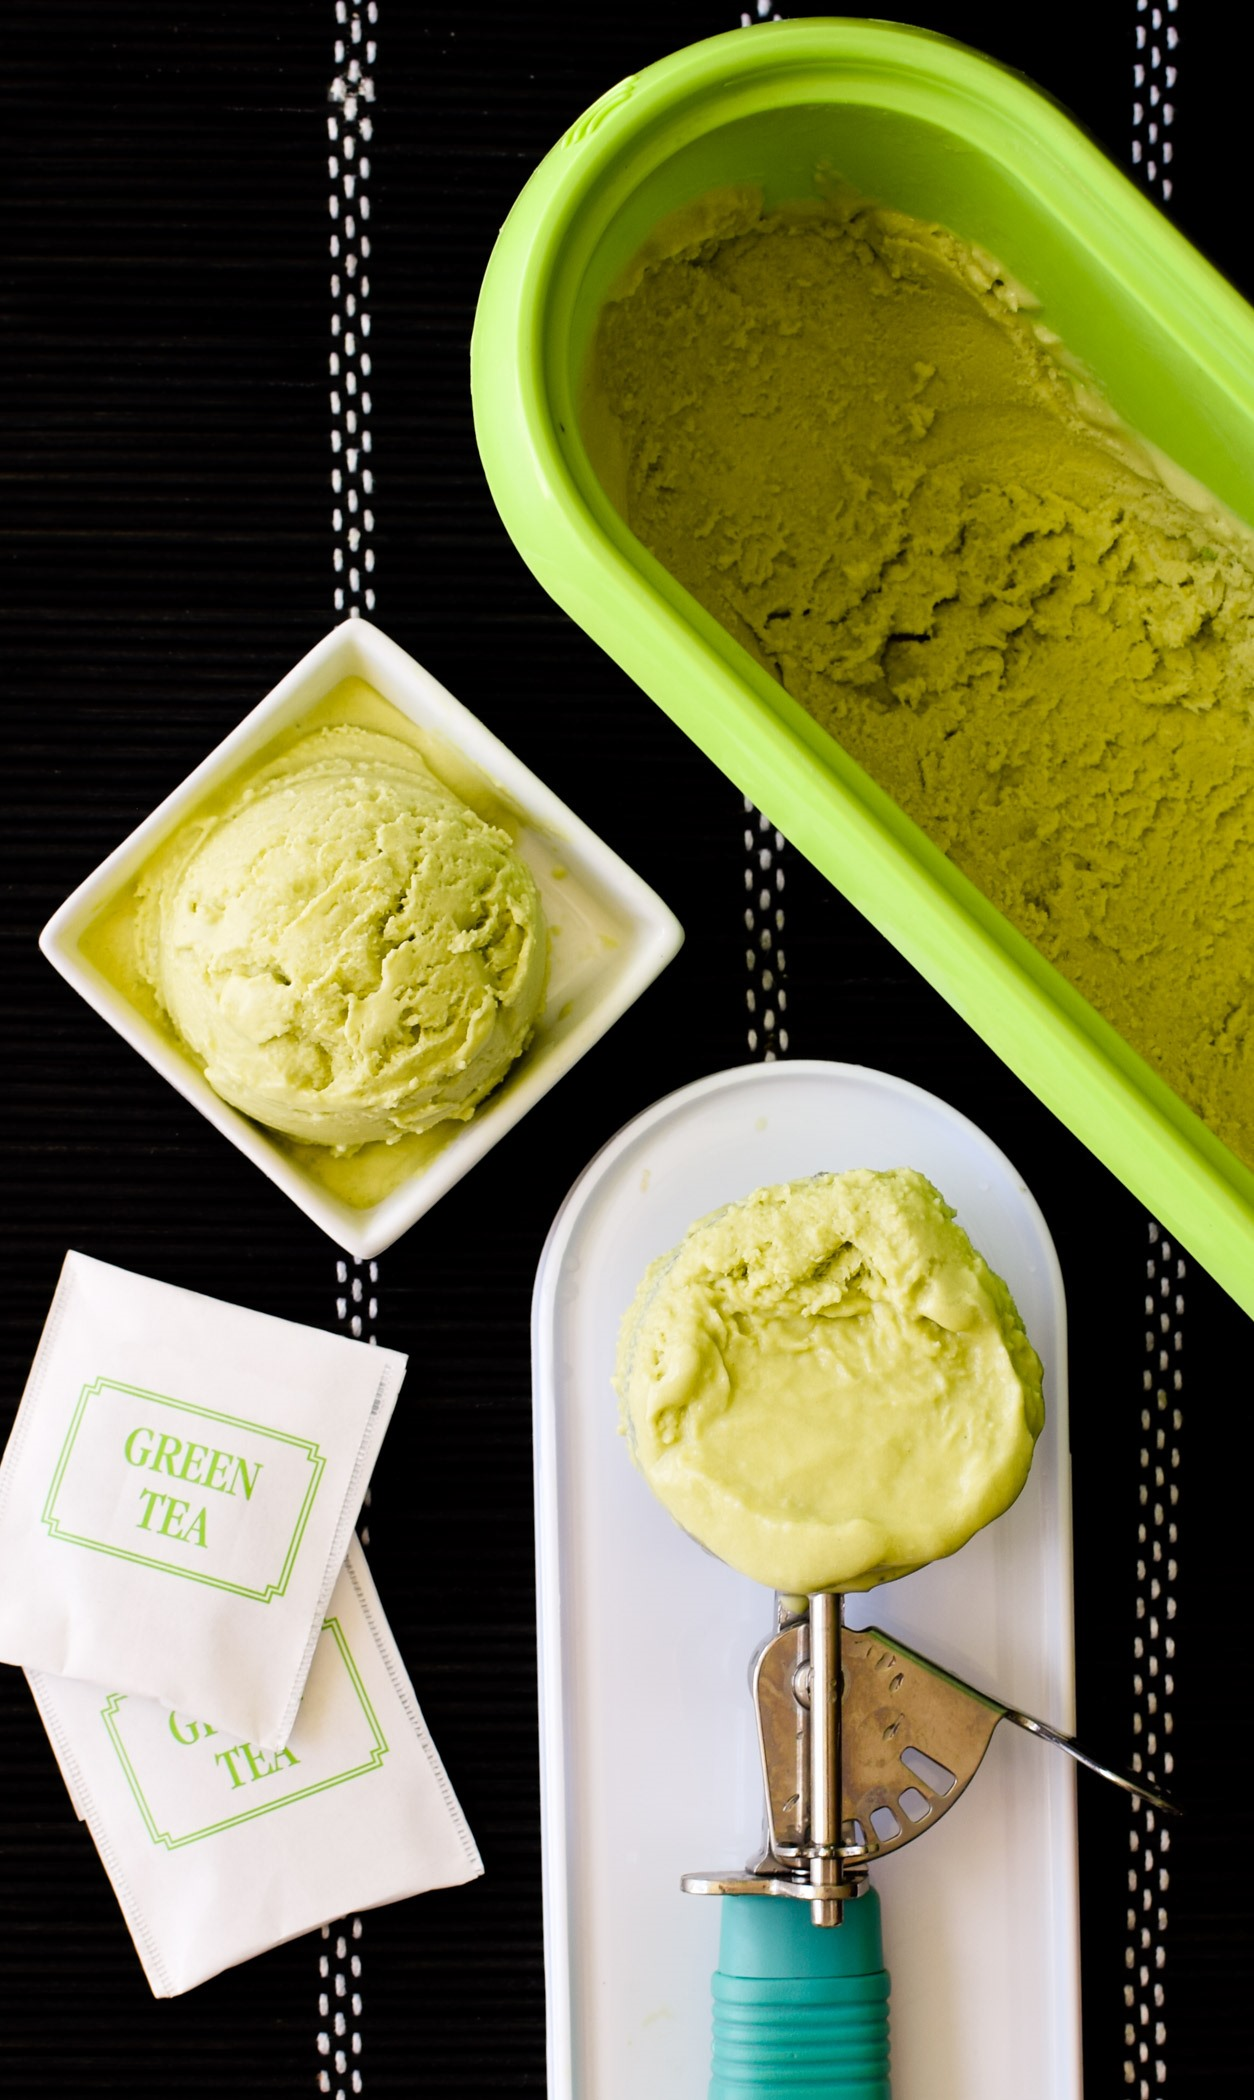 Dairy-Free Green Tea Ice Cream Recipe (naturally vegan, gluten-free, soy-free and just 5 ingredients!)